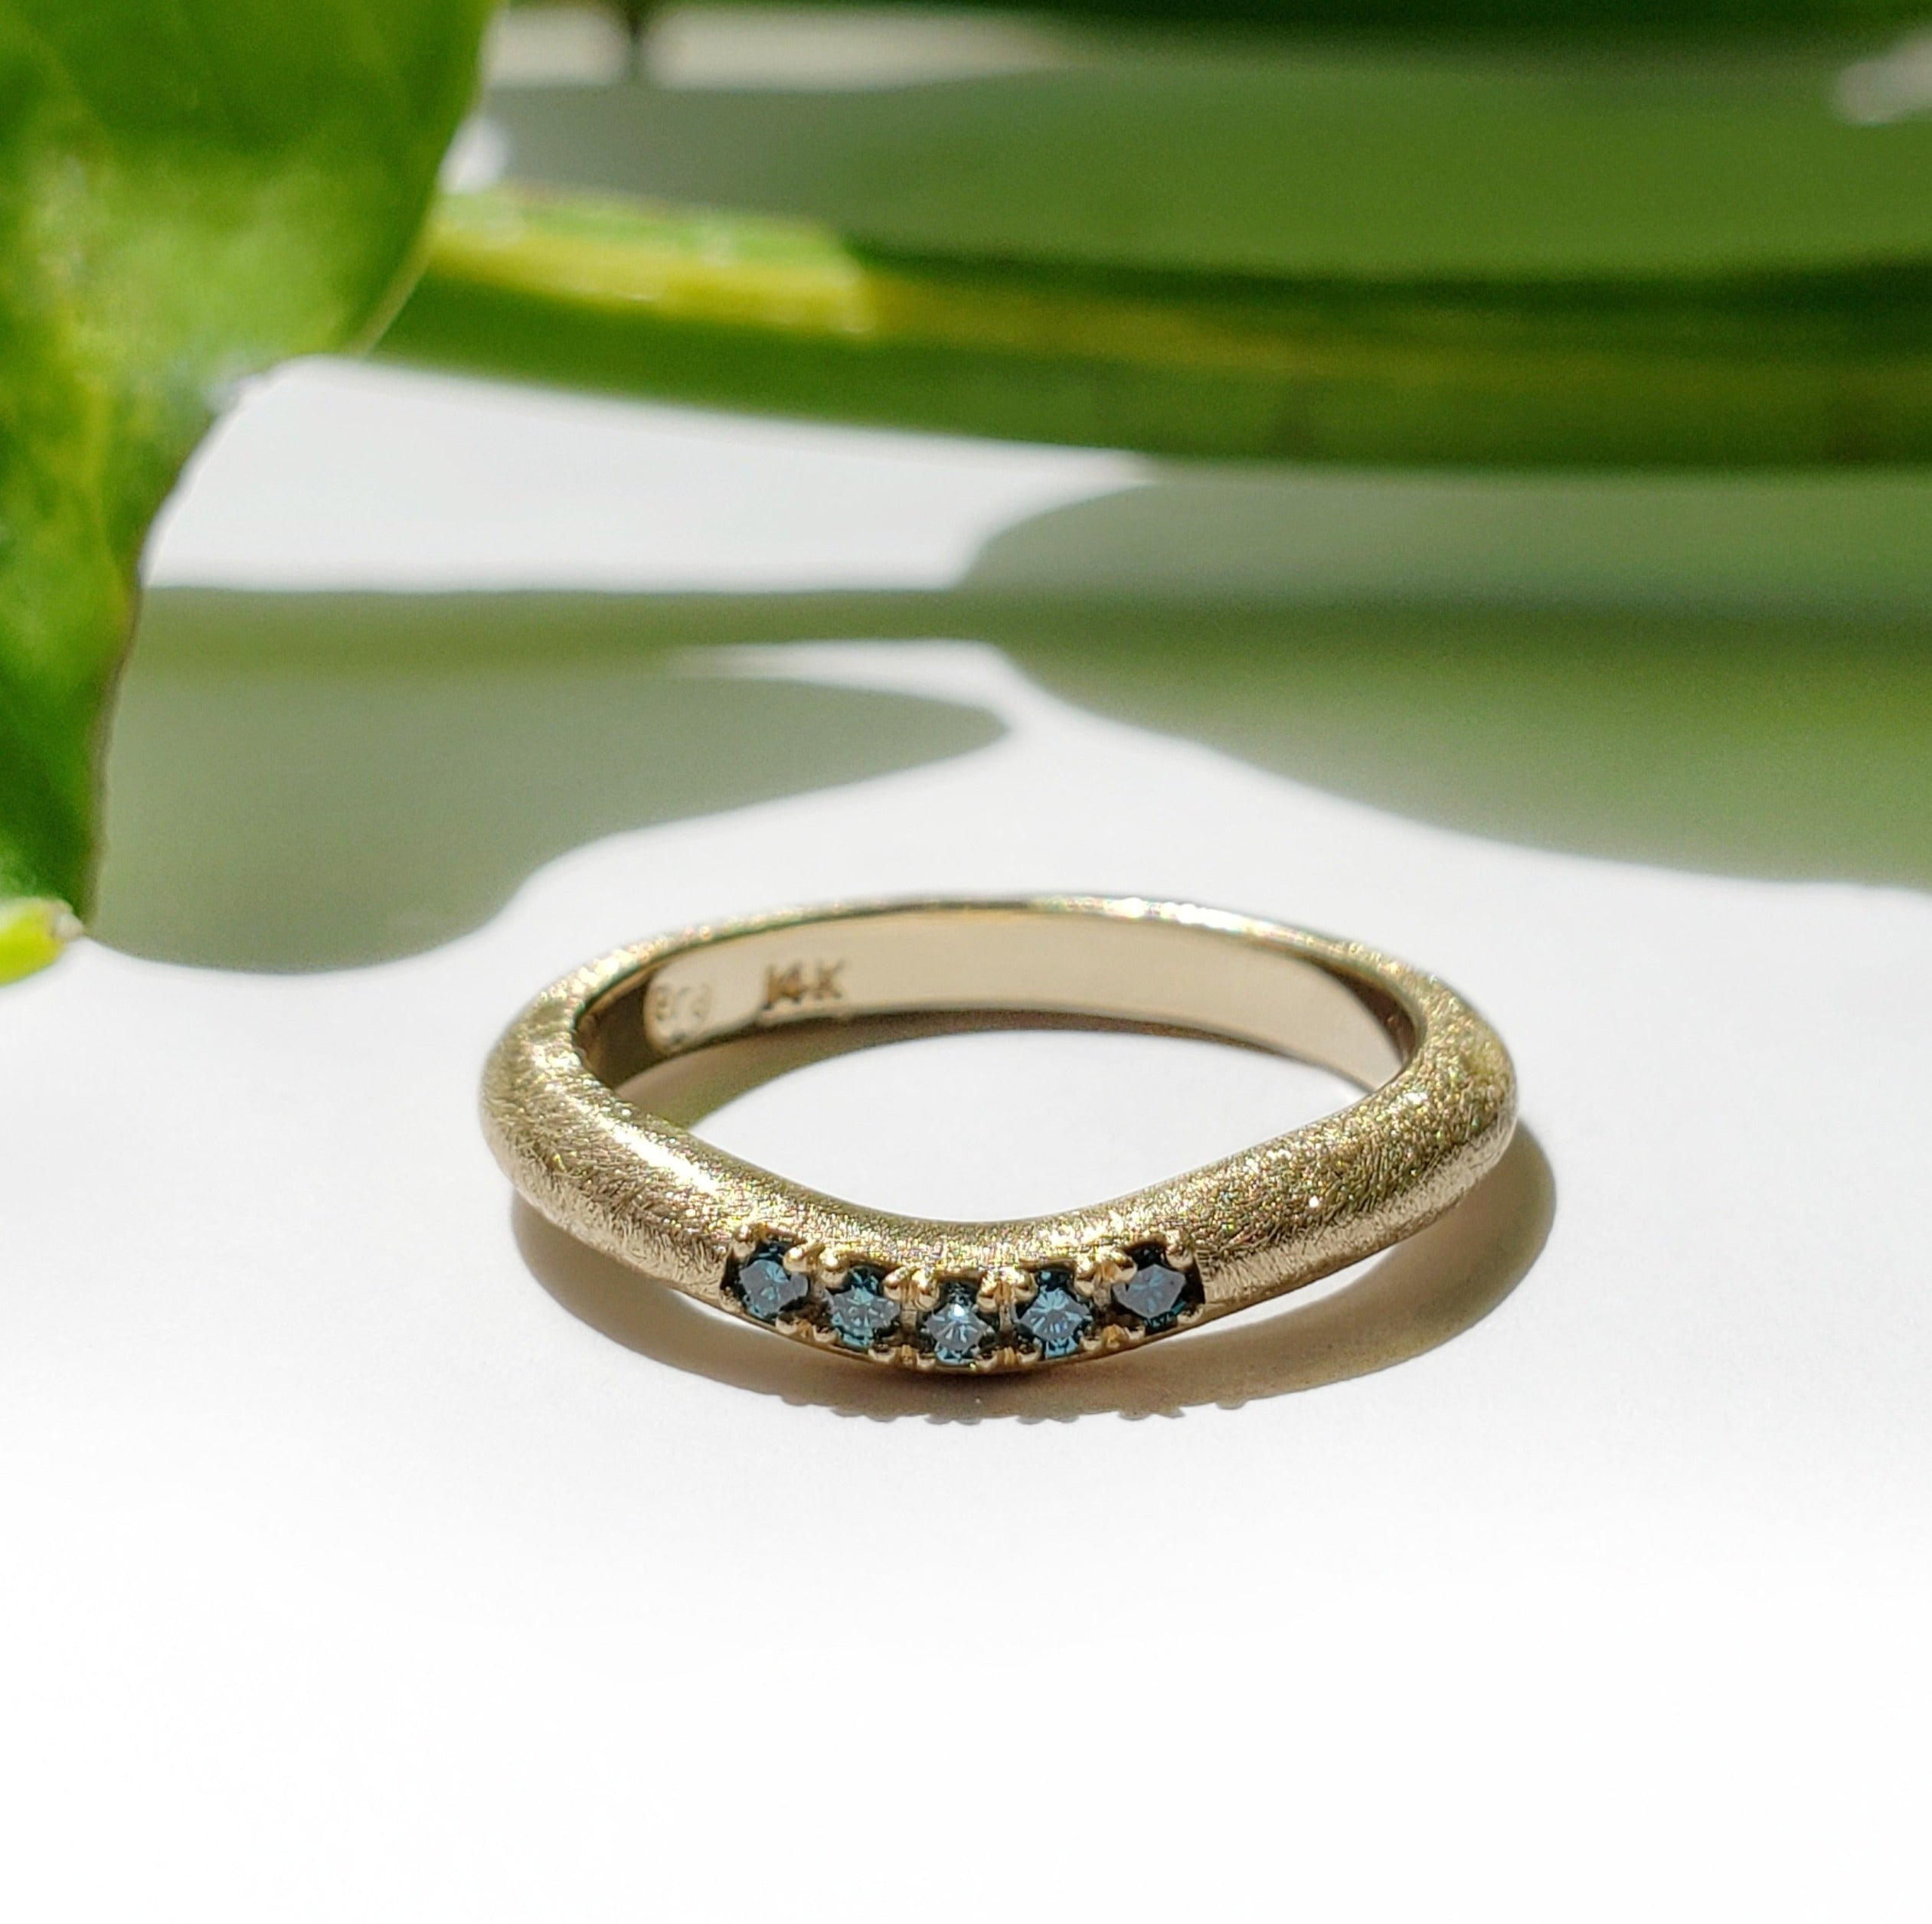 14kt yellow gold saw blade texture curved chevron wedding band blue treated diamonds era design